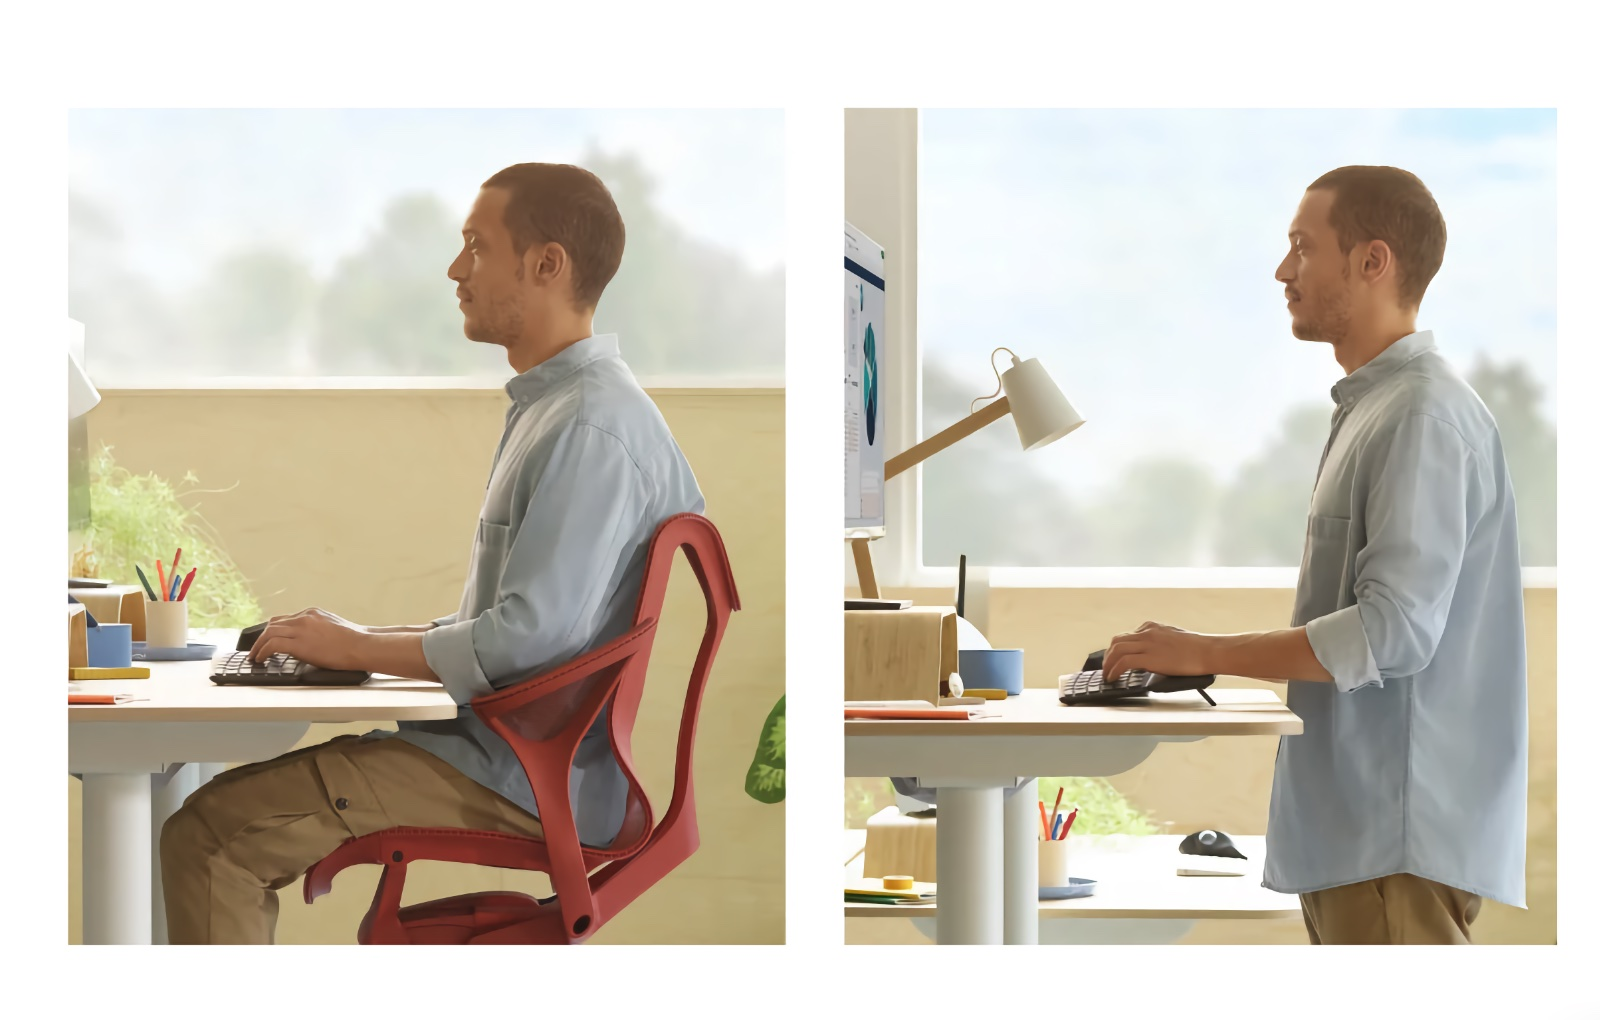 Be ergonomic no matter what your work set-up. Image courtesy of Logitech.